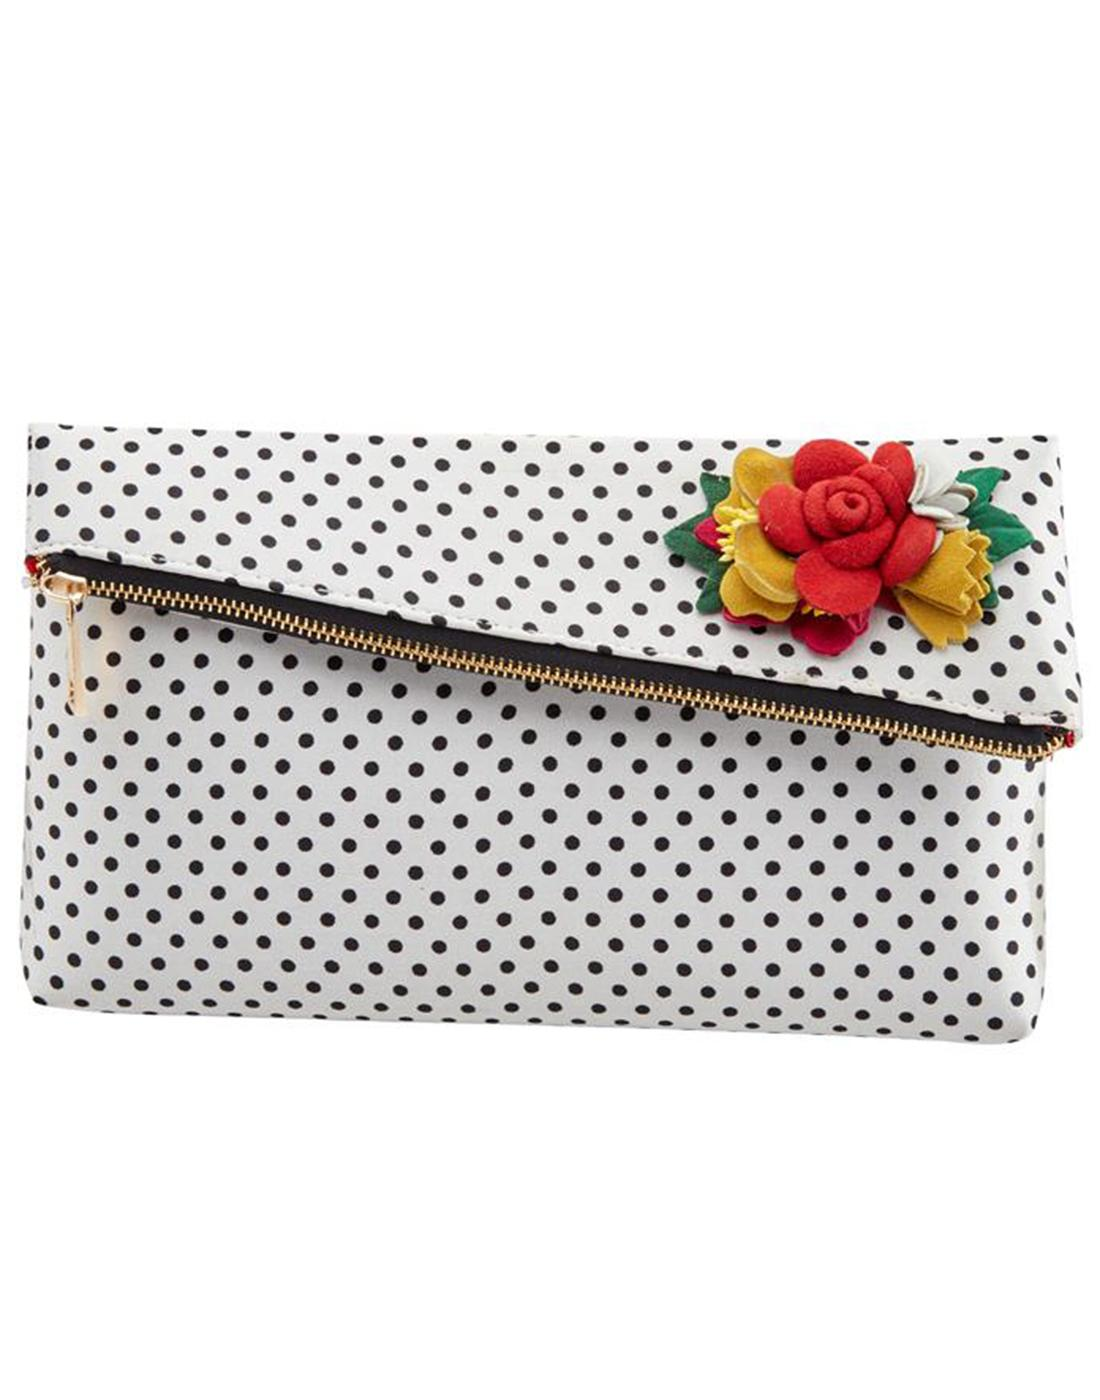 Meryl Bag JOE BROWNS Vintage Polkadot Clutch Bag